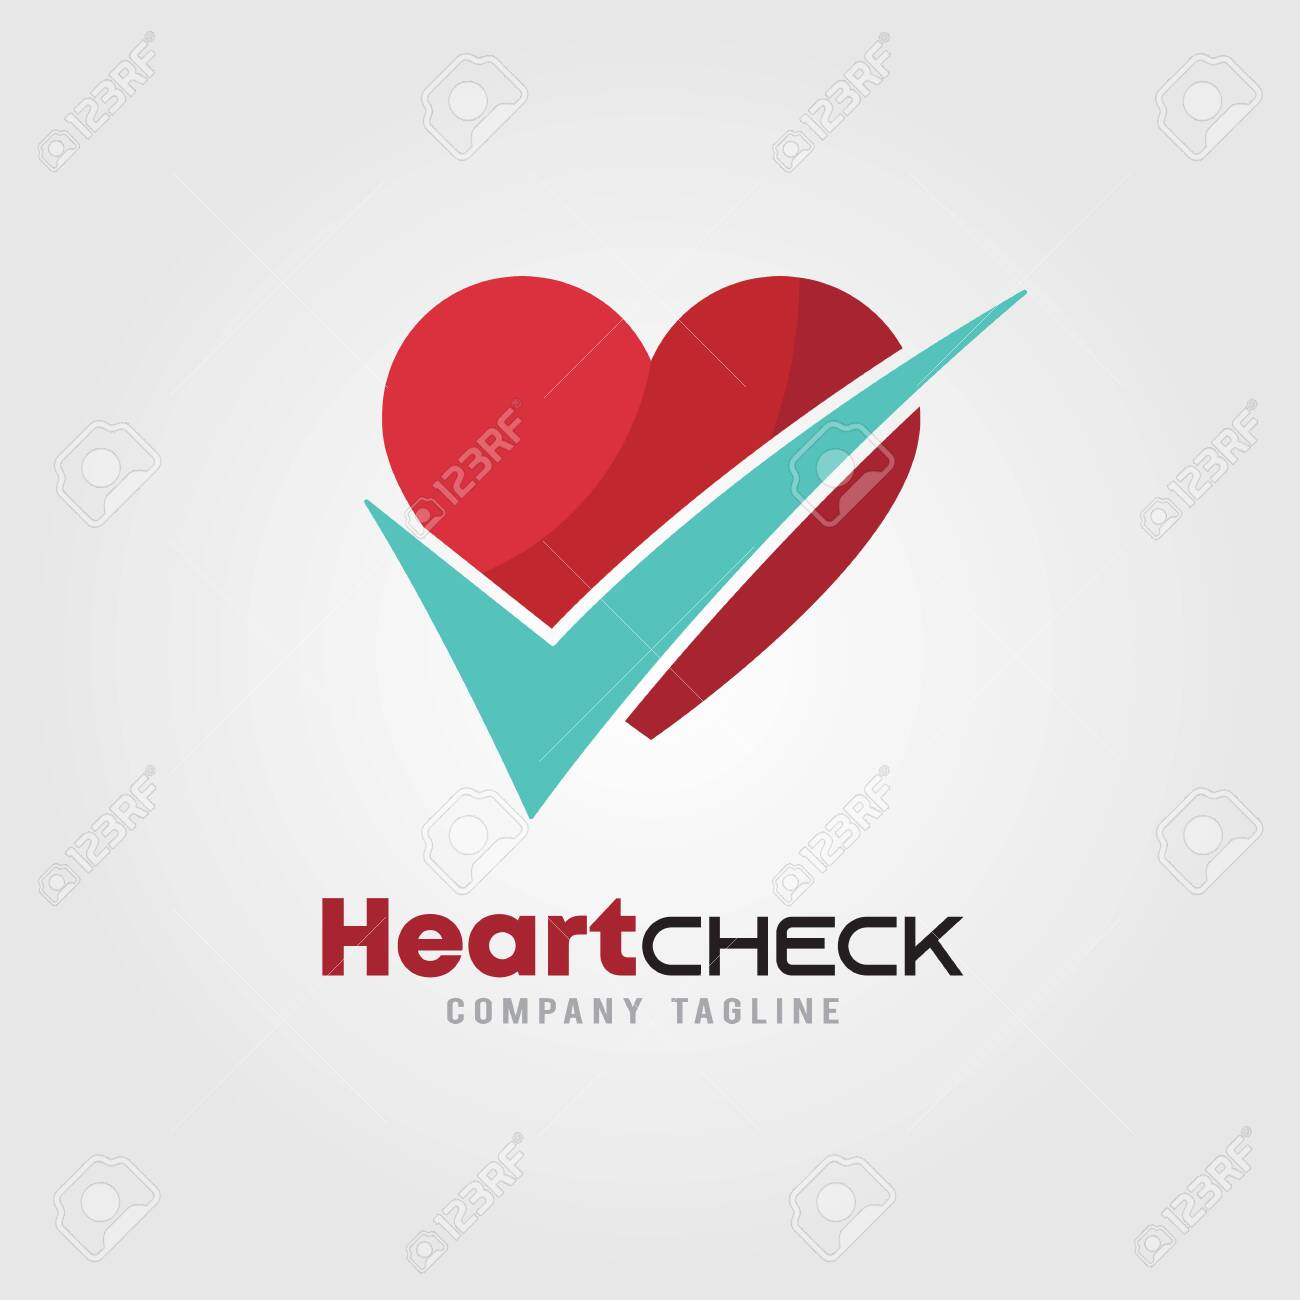 Heart Check Up With Heart Icons And Check Mark Logo Template Royalty Free Cliparts Vectors And Stock Illustration Image 122526673